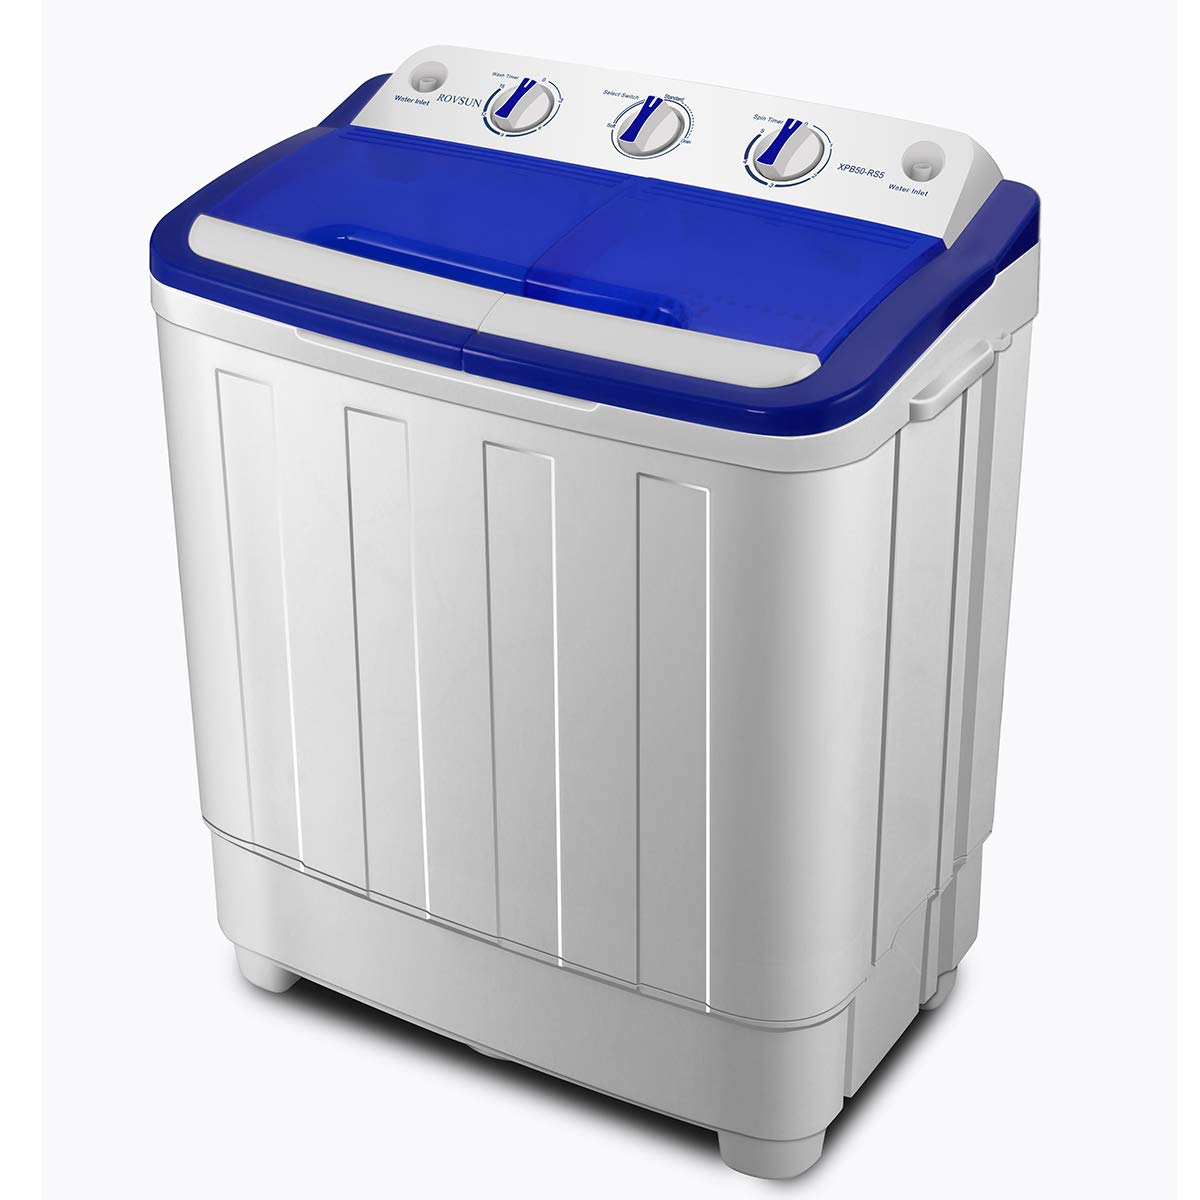 ROVSUN 16.6 LBS Portable Twin Tub Washing Machine, Electric Compact Washer, Energy/Save Space, Laundry Spin Cycle w/Hose, Great for Home RV Camping Dorms Apartments College Rooms